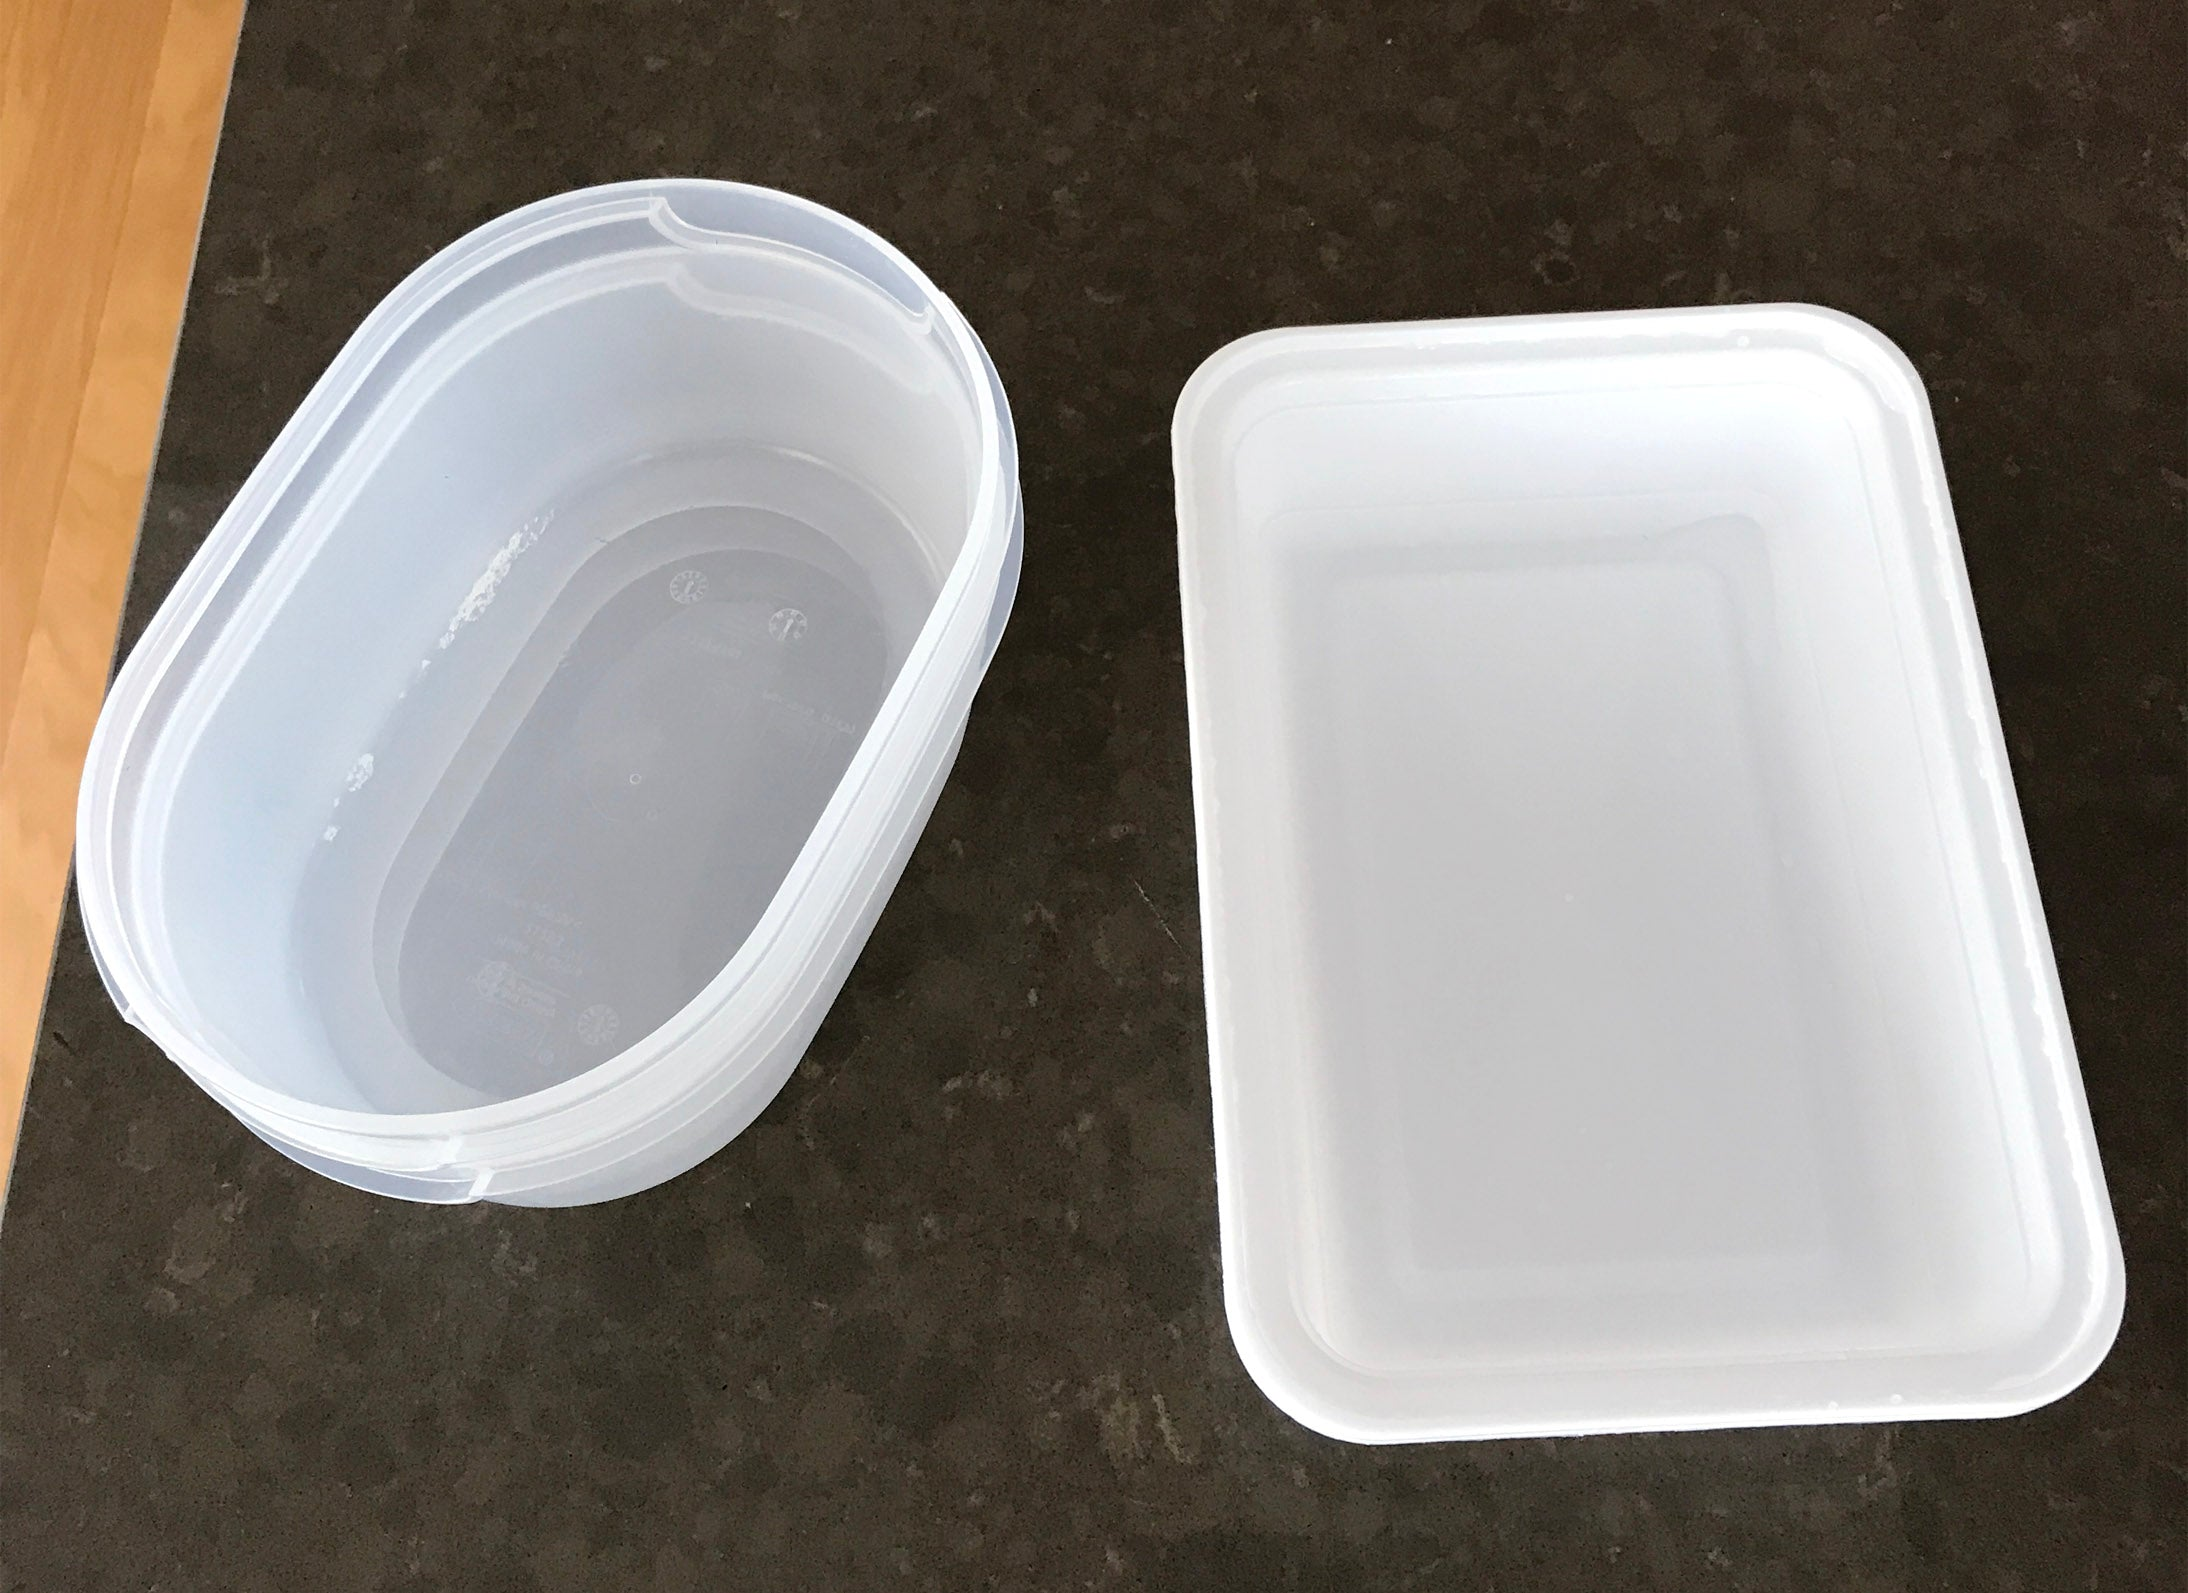 Two plastic containers for food side by side